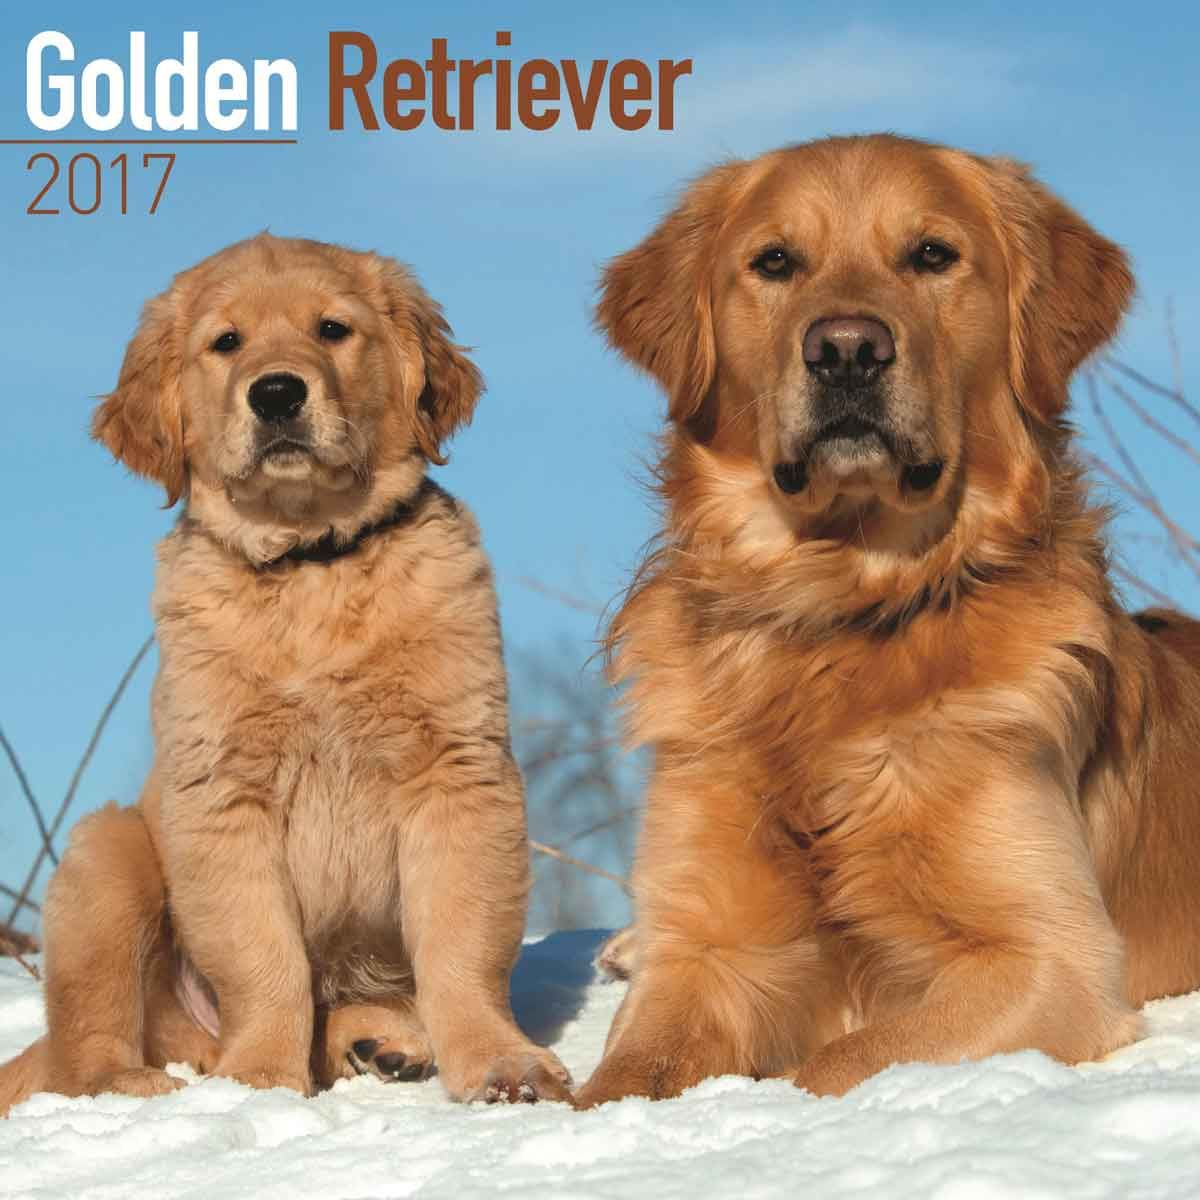 Golden Retriever Calendar 2017 Dog Lover Gifts Dog Lovers Dog Breeds